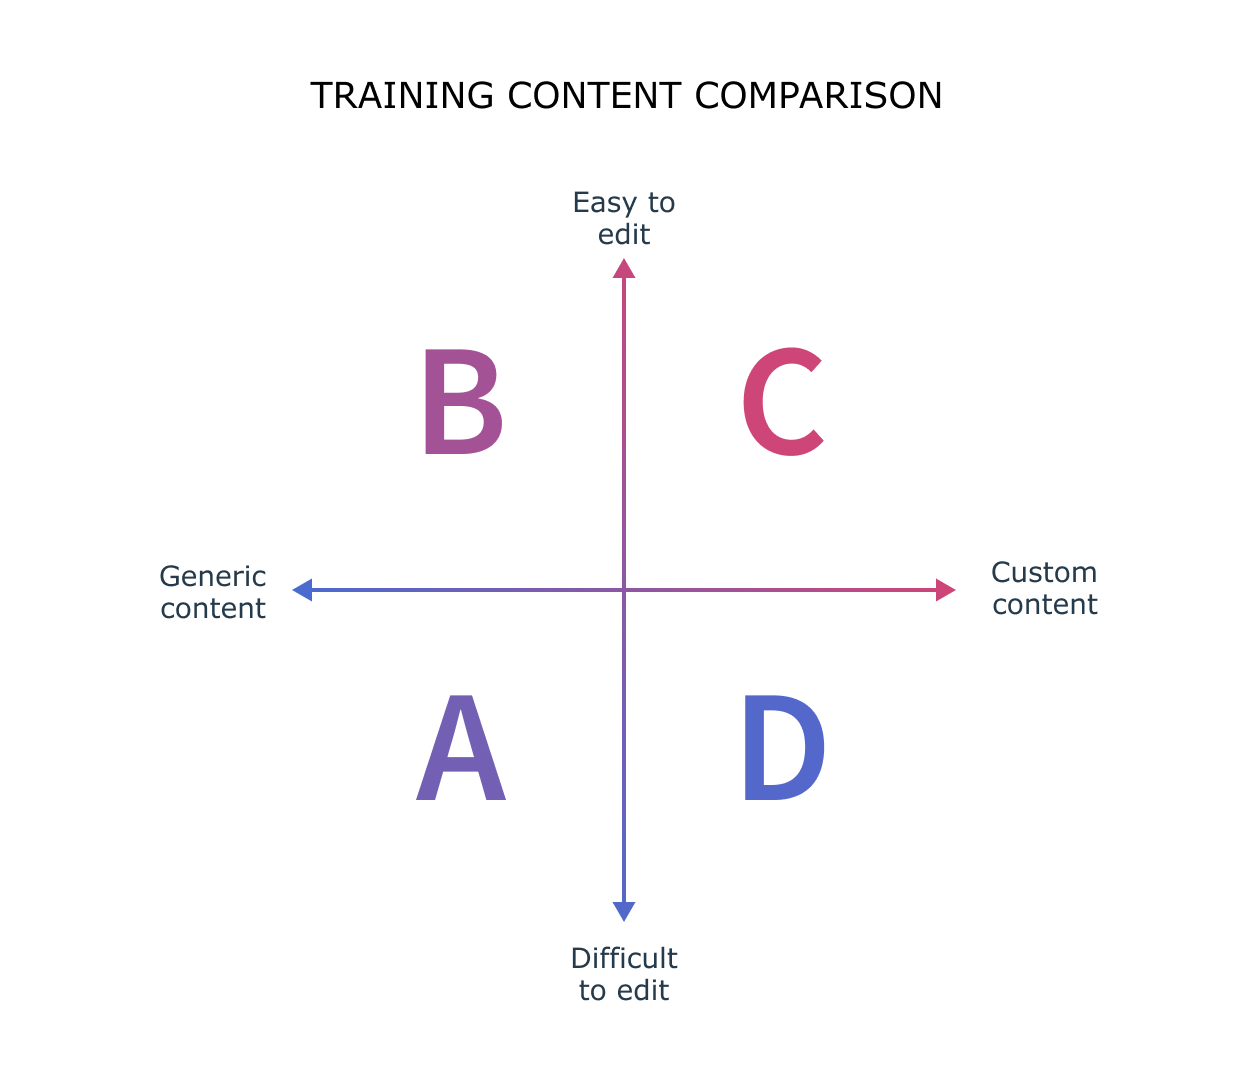 Compliance training content comparison: generic vs custom